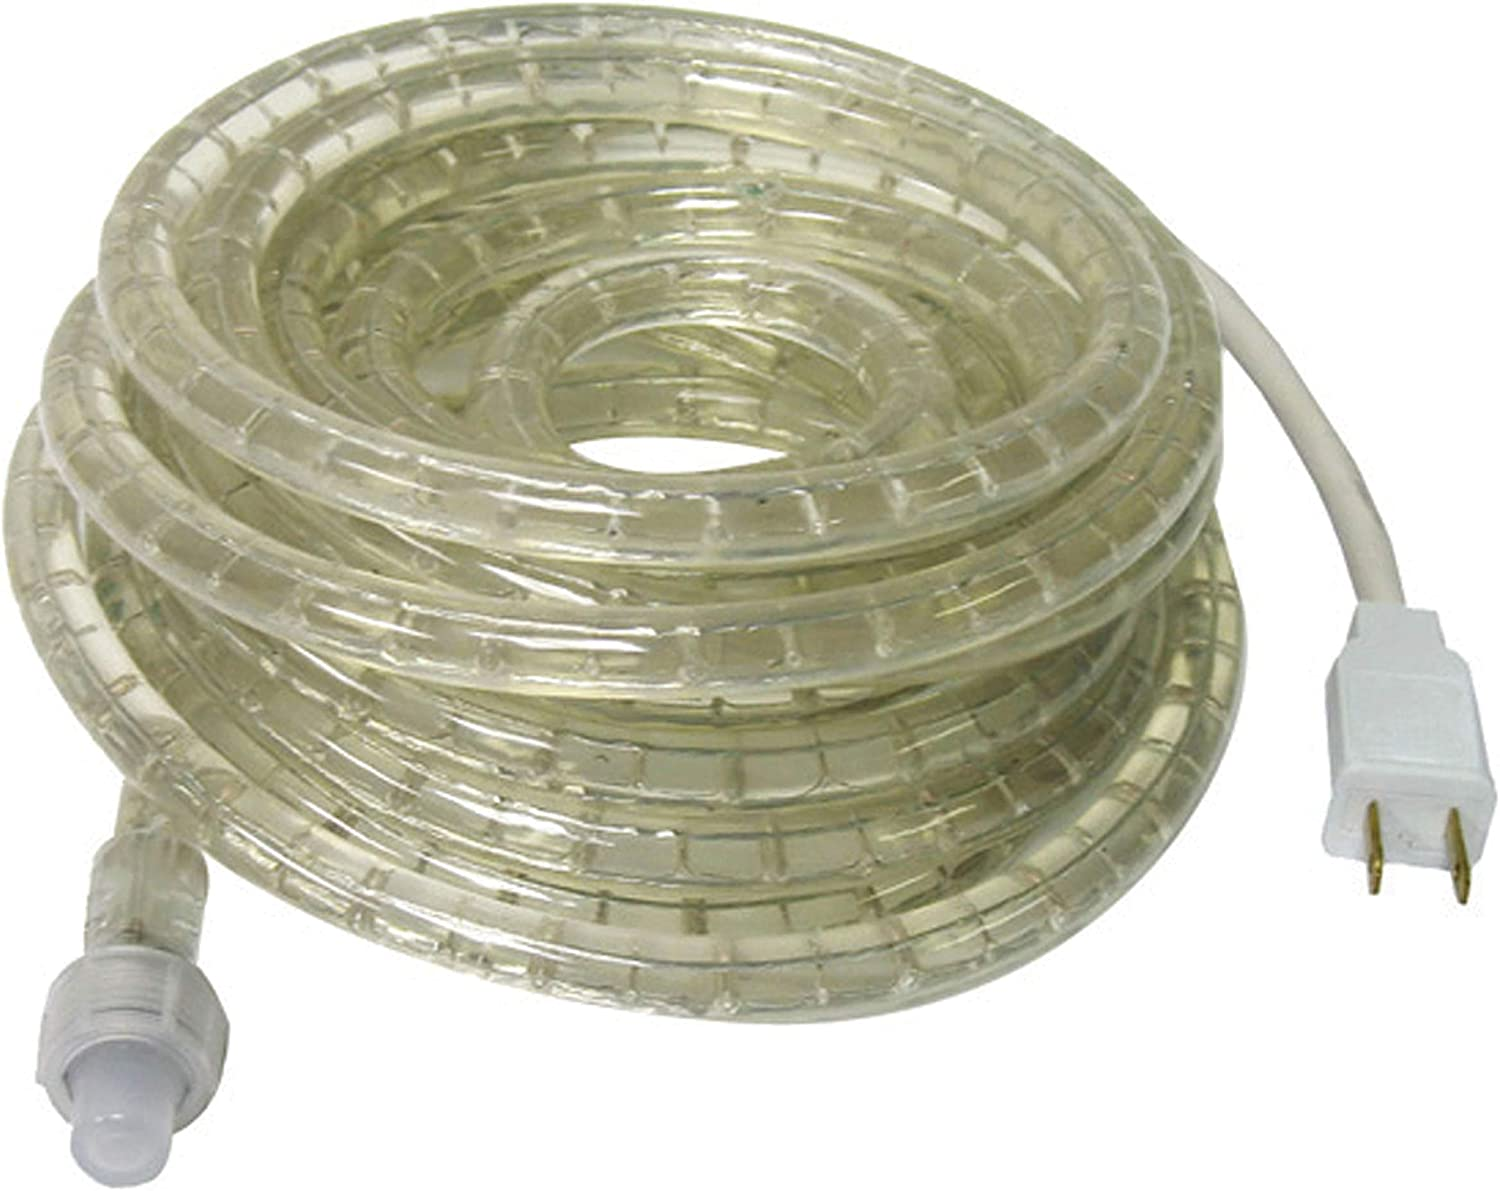 Camco LED 16 Rope Camper Interior and Exterior Lighting for Special Occasions and Outdoor Events 53100 Fits Into Your RV Awning Track